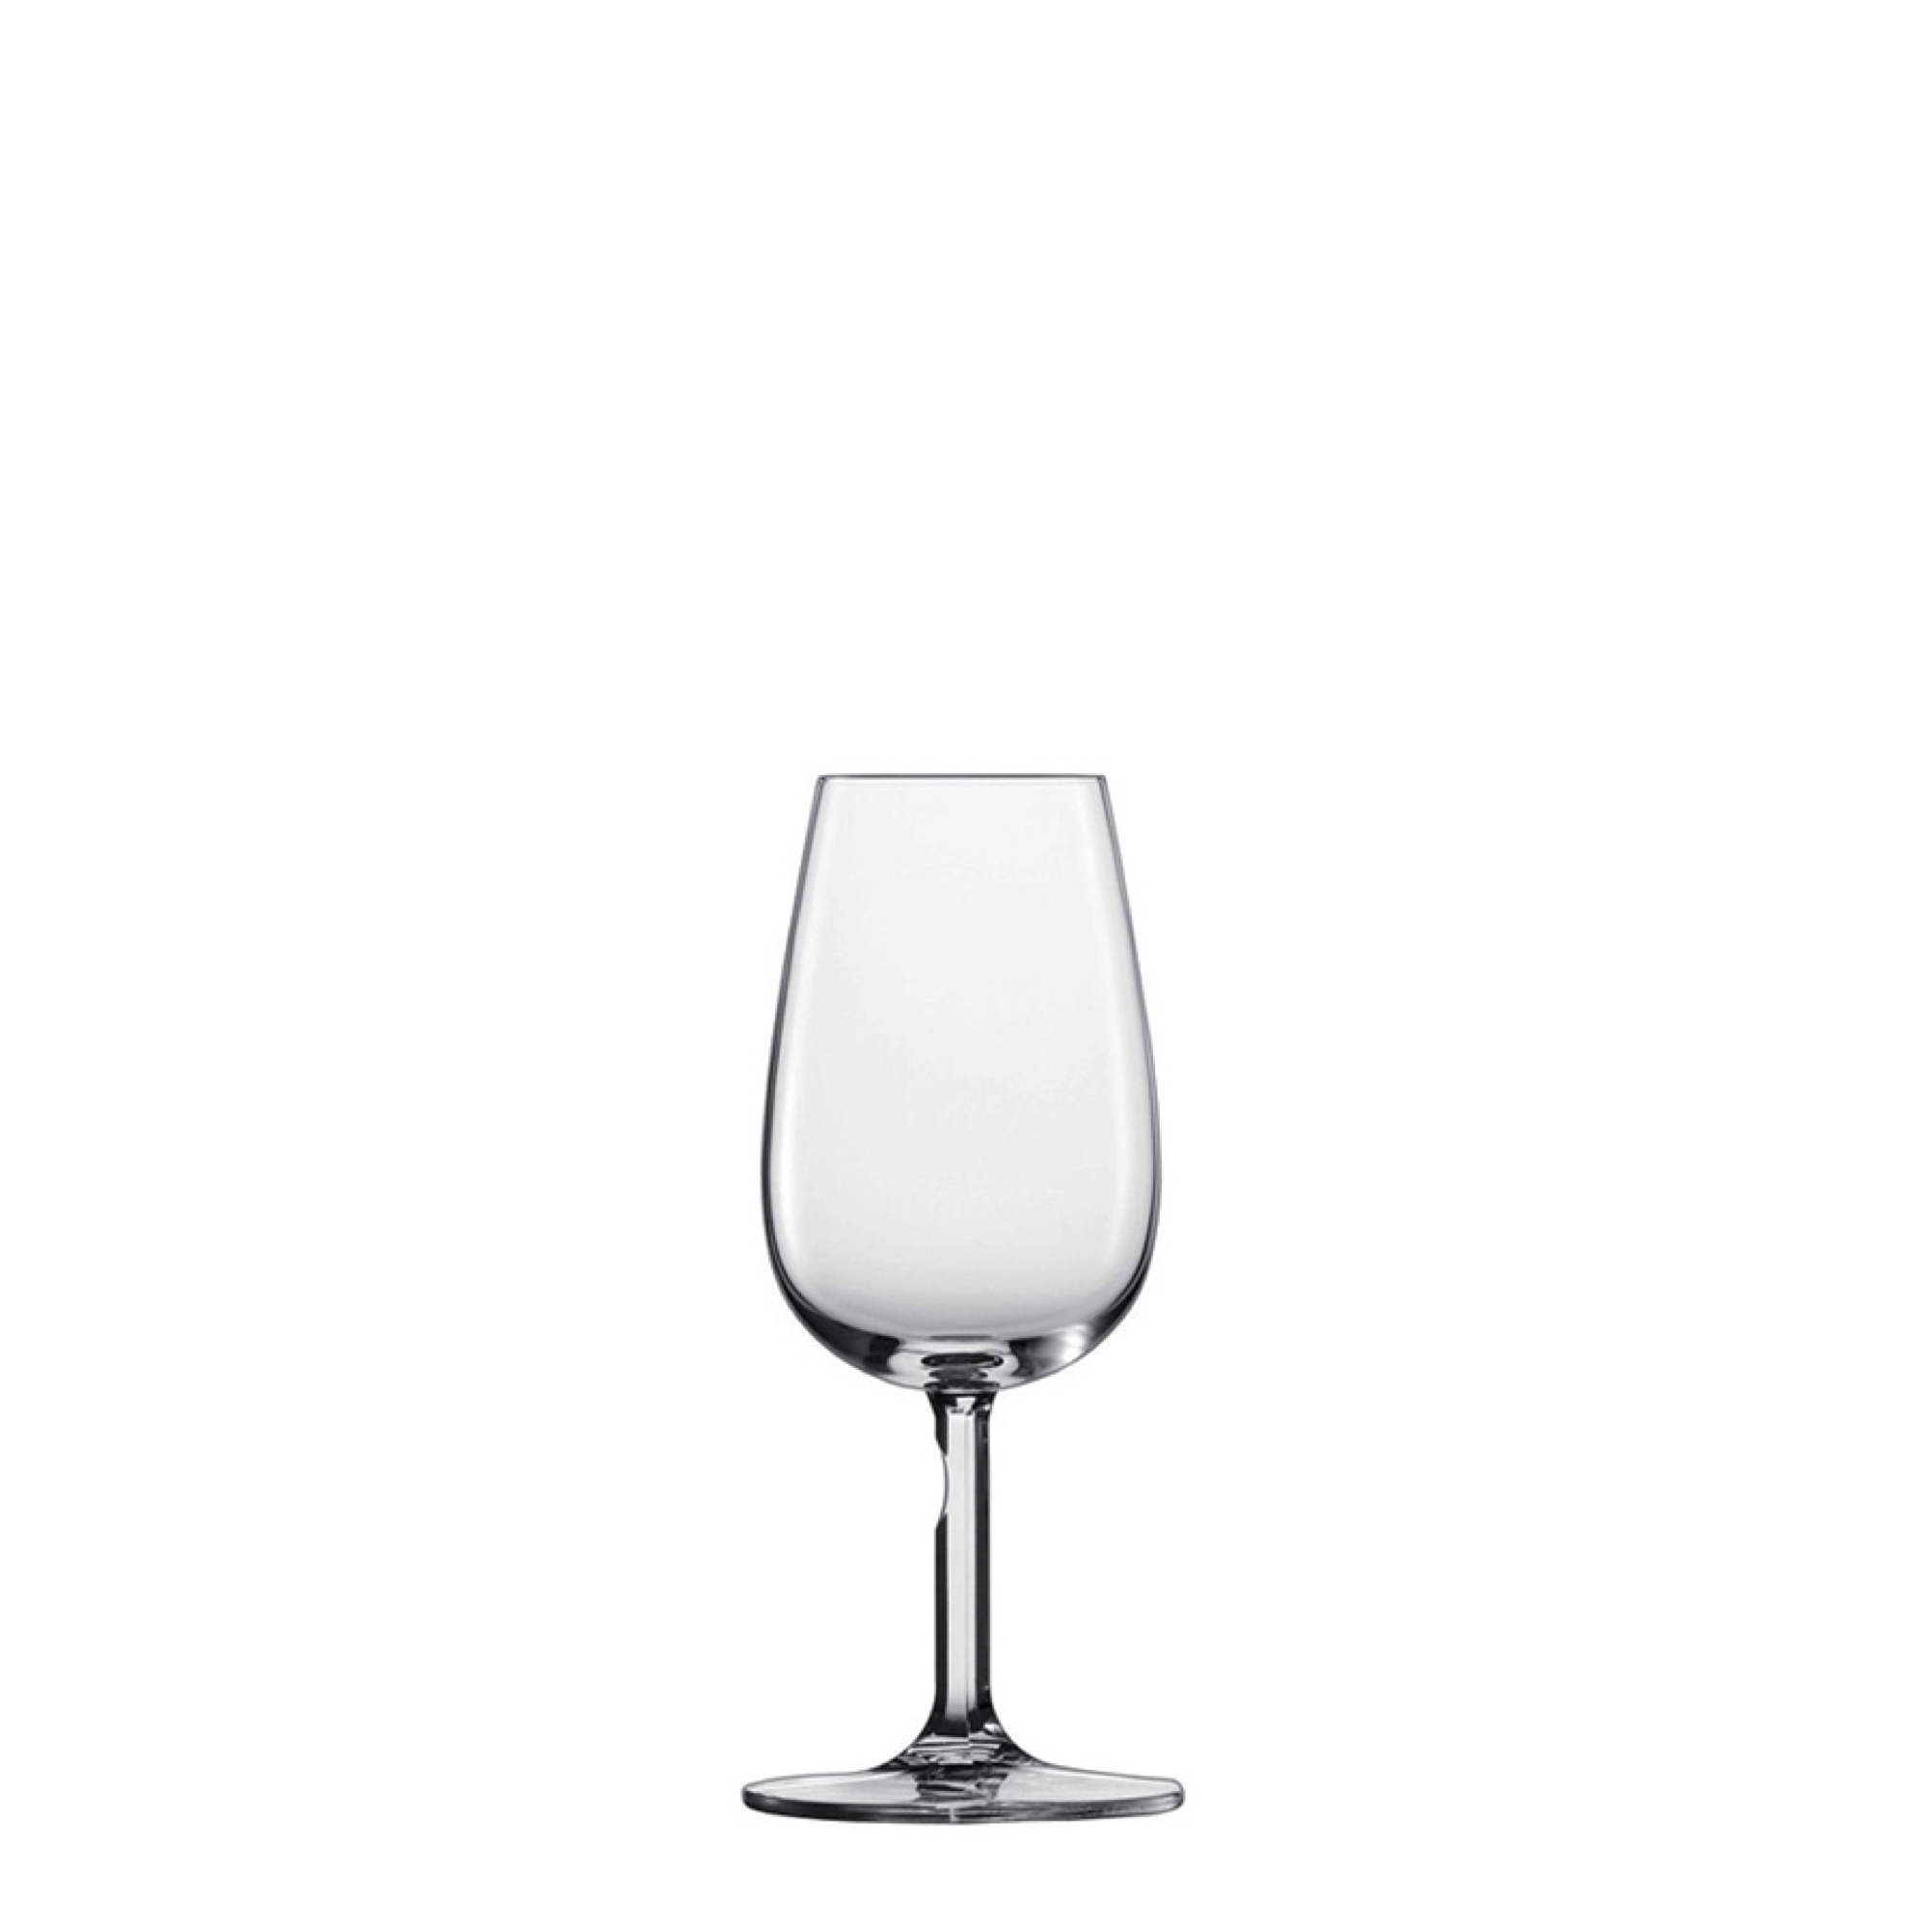 Schott Zwiesel Crystal Wine Glasses | Titanium Wine Glass | Schott Zwiesel Wine Glasses